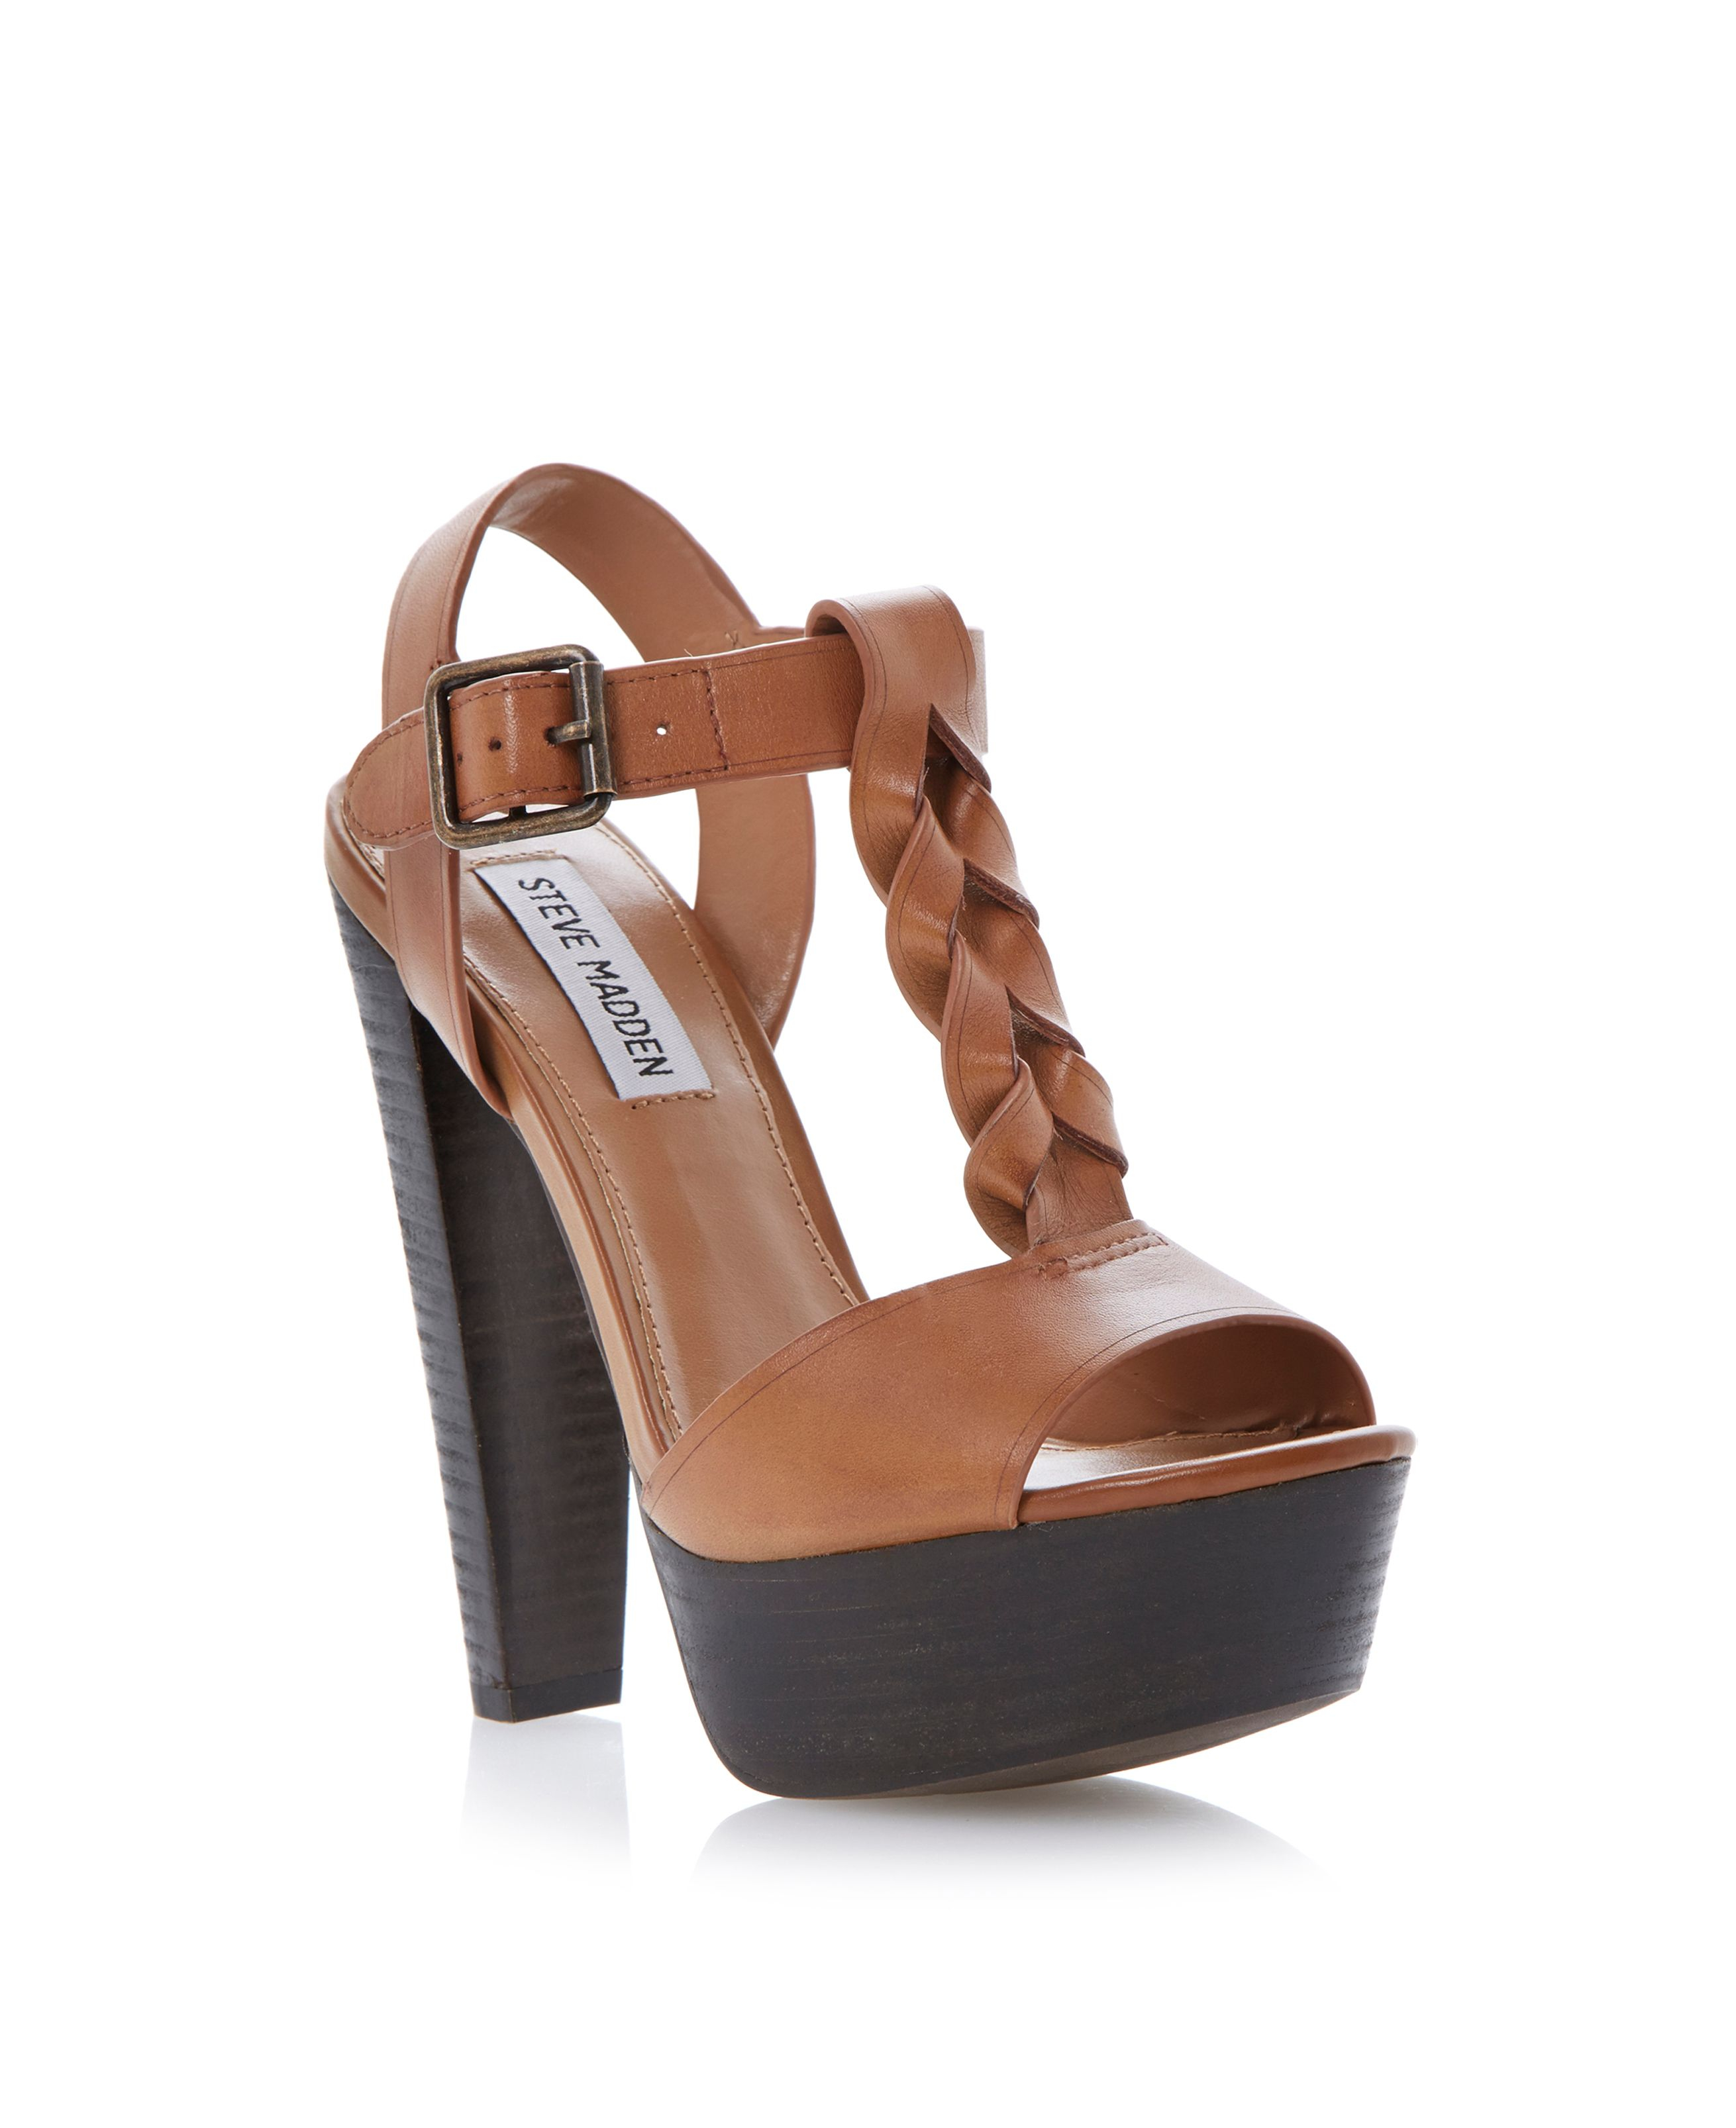 steve madden daylee block heel sandals in brown lyst. Black Bedroom Furniture Sets. Home Design Ideas